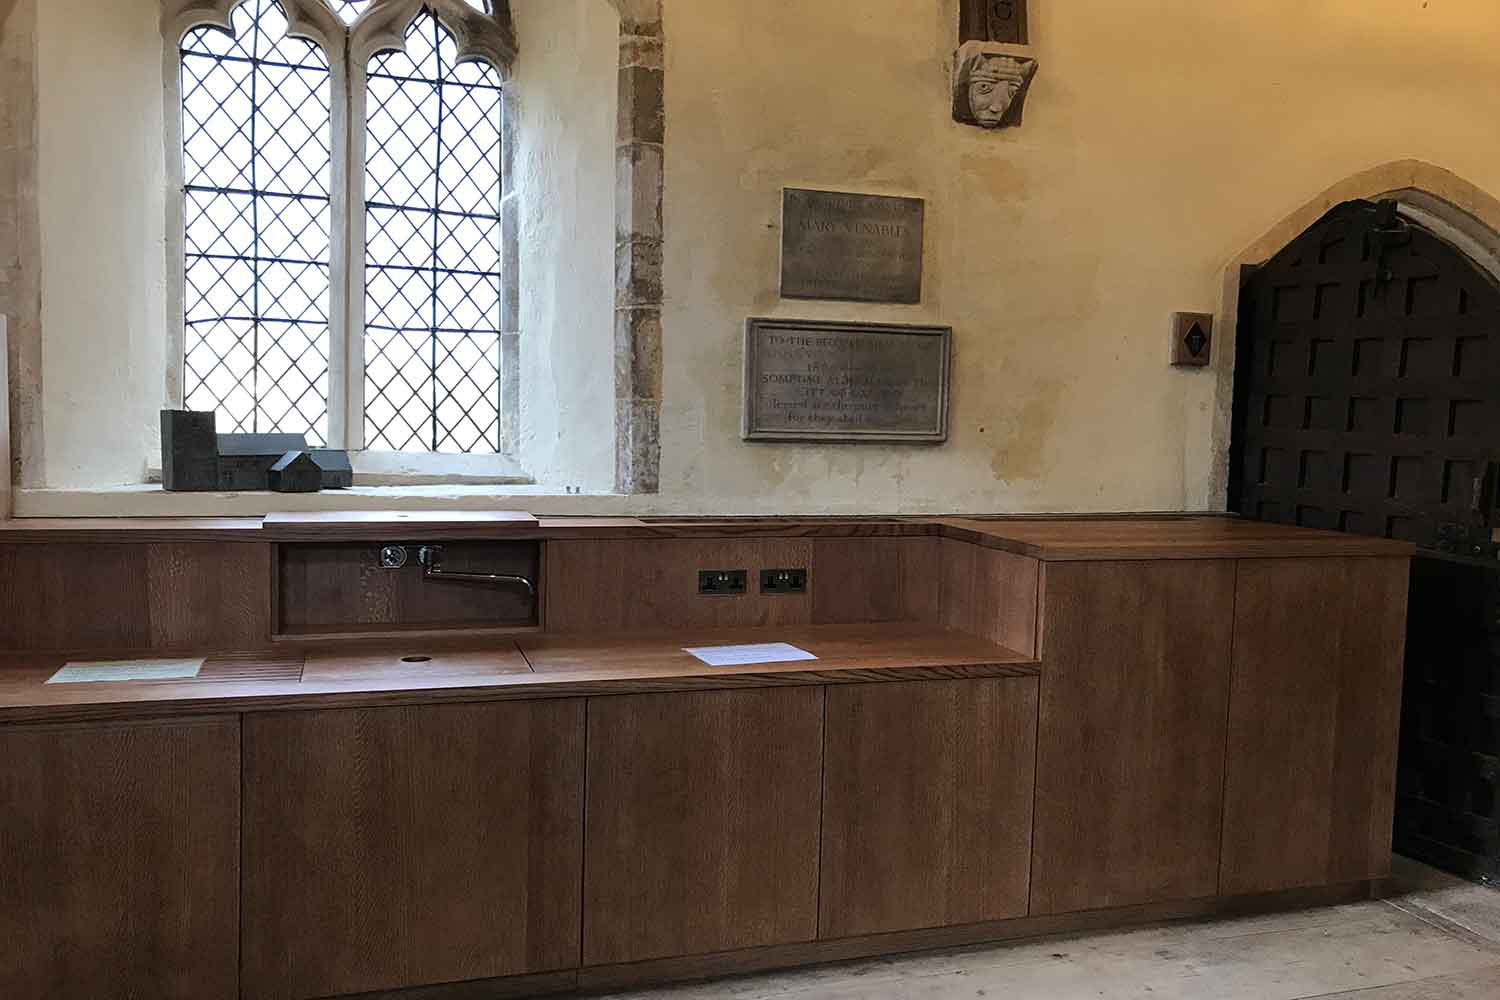 Bespoke Joinery for Historic Church in Oxfordshire